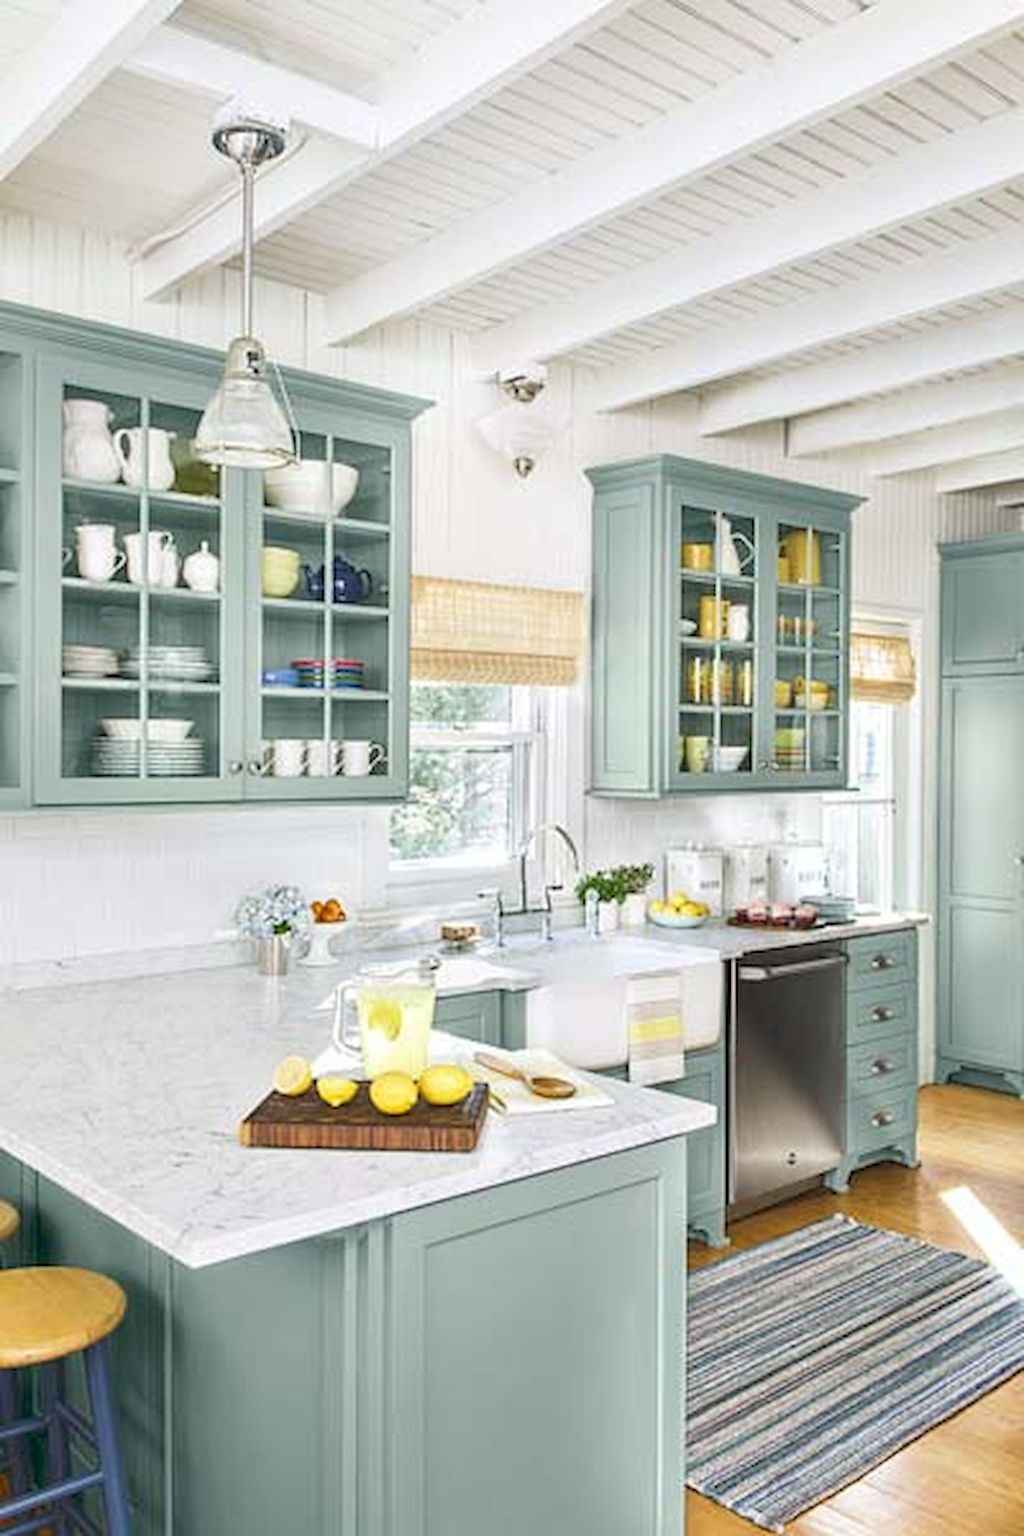 60 Small Kitchen Ideas Remodel - LivingMarch.com